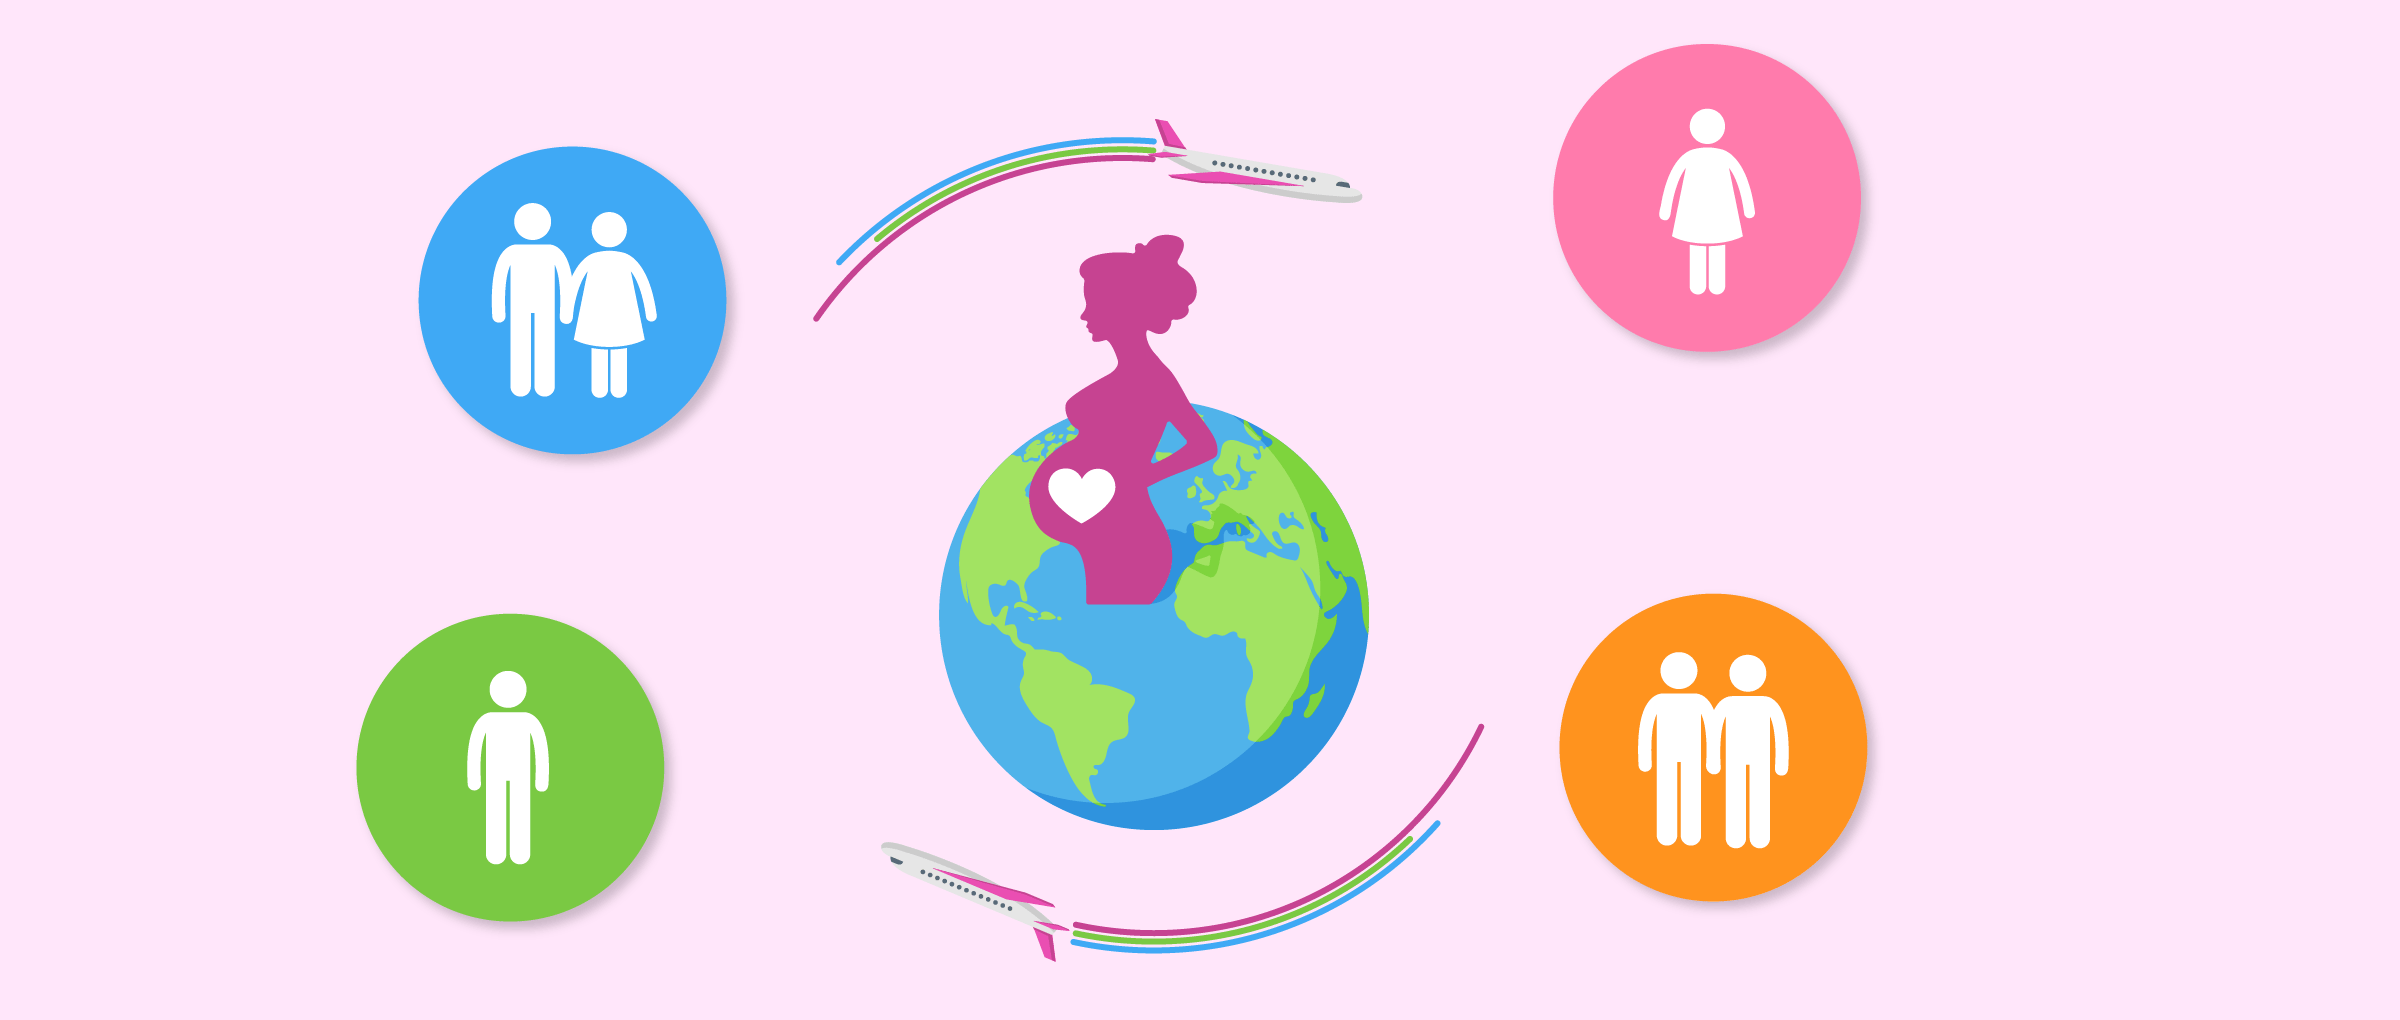 International Surrogacy - Laws & Options for Surrogacy Abroad